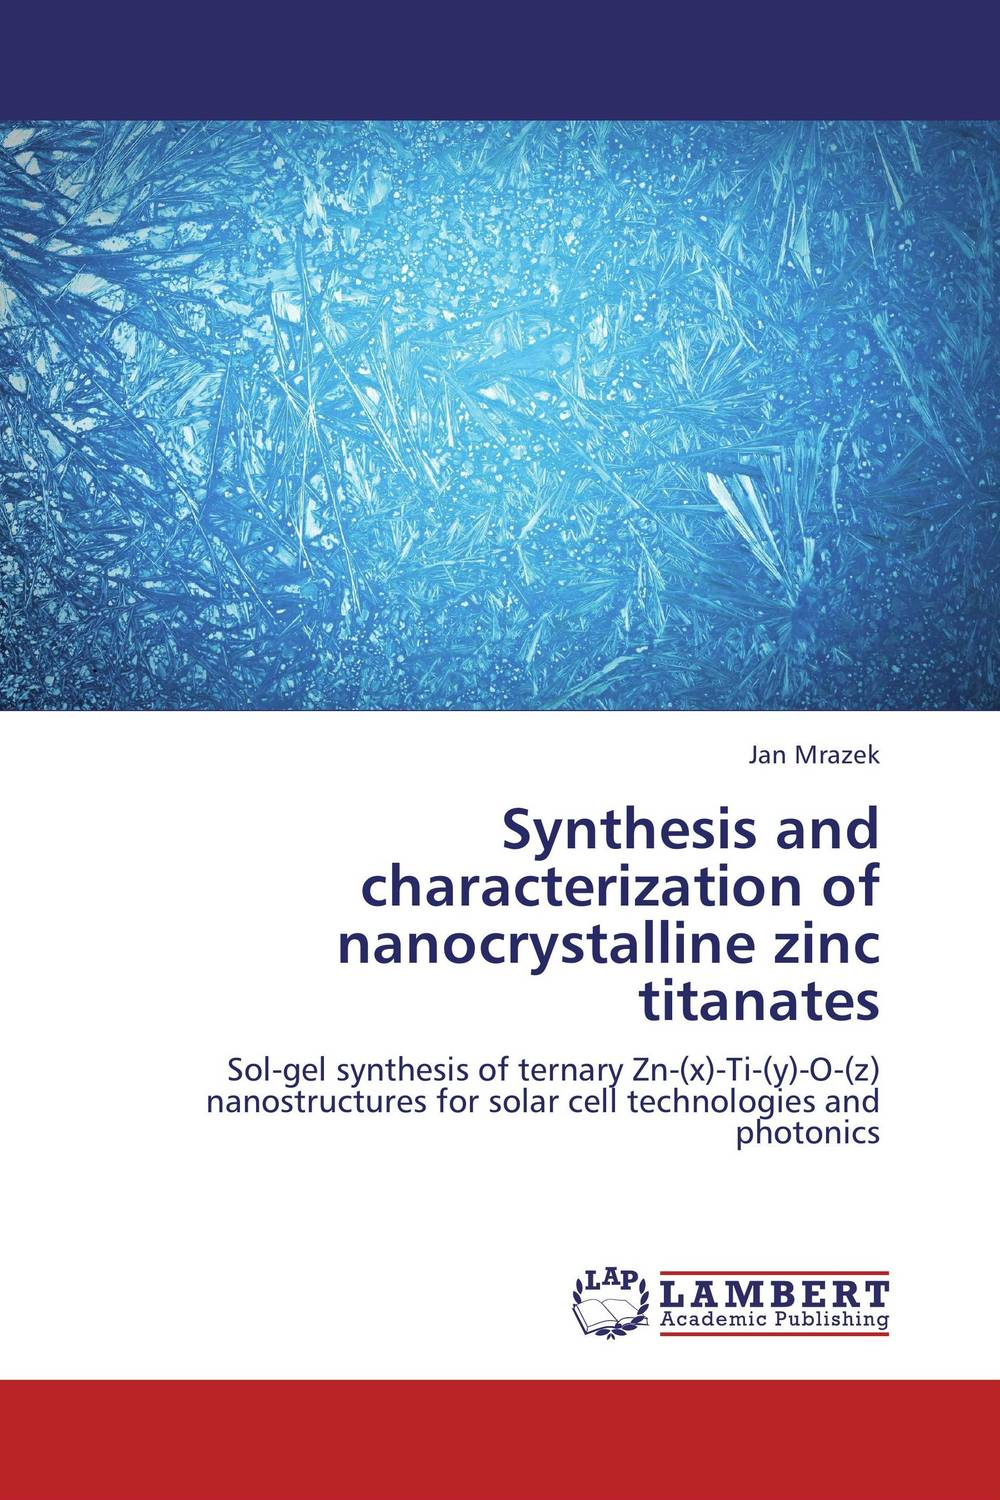 Synthesis and characterization of nanocrystalline zinc titanates synthesis characterization and applications of nano cdha